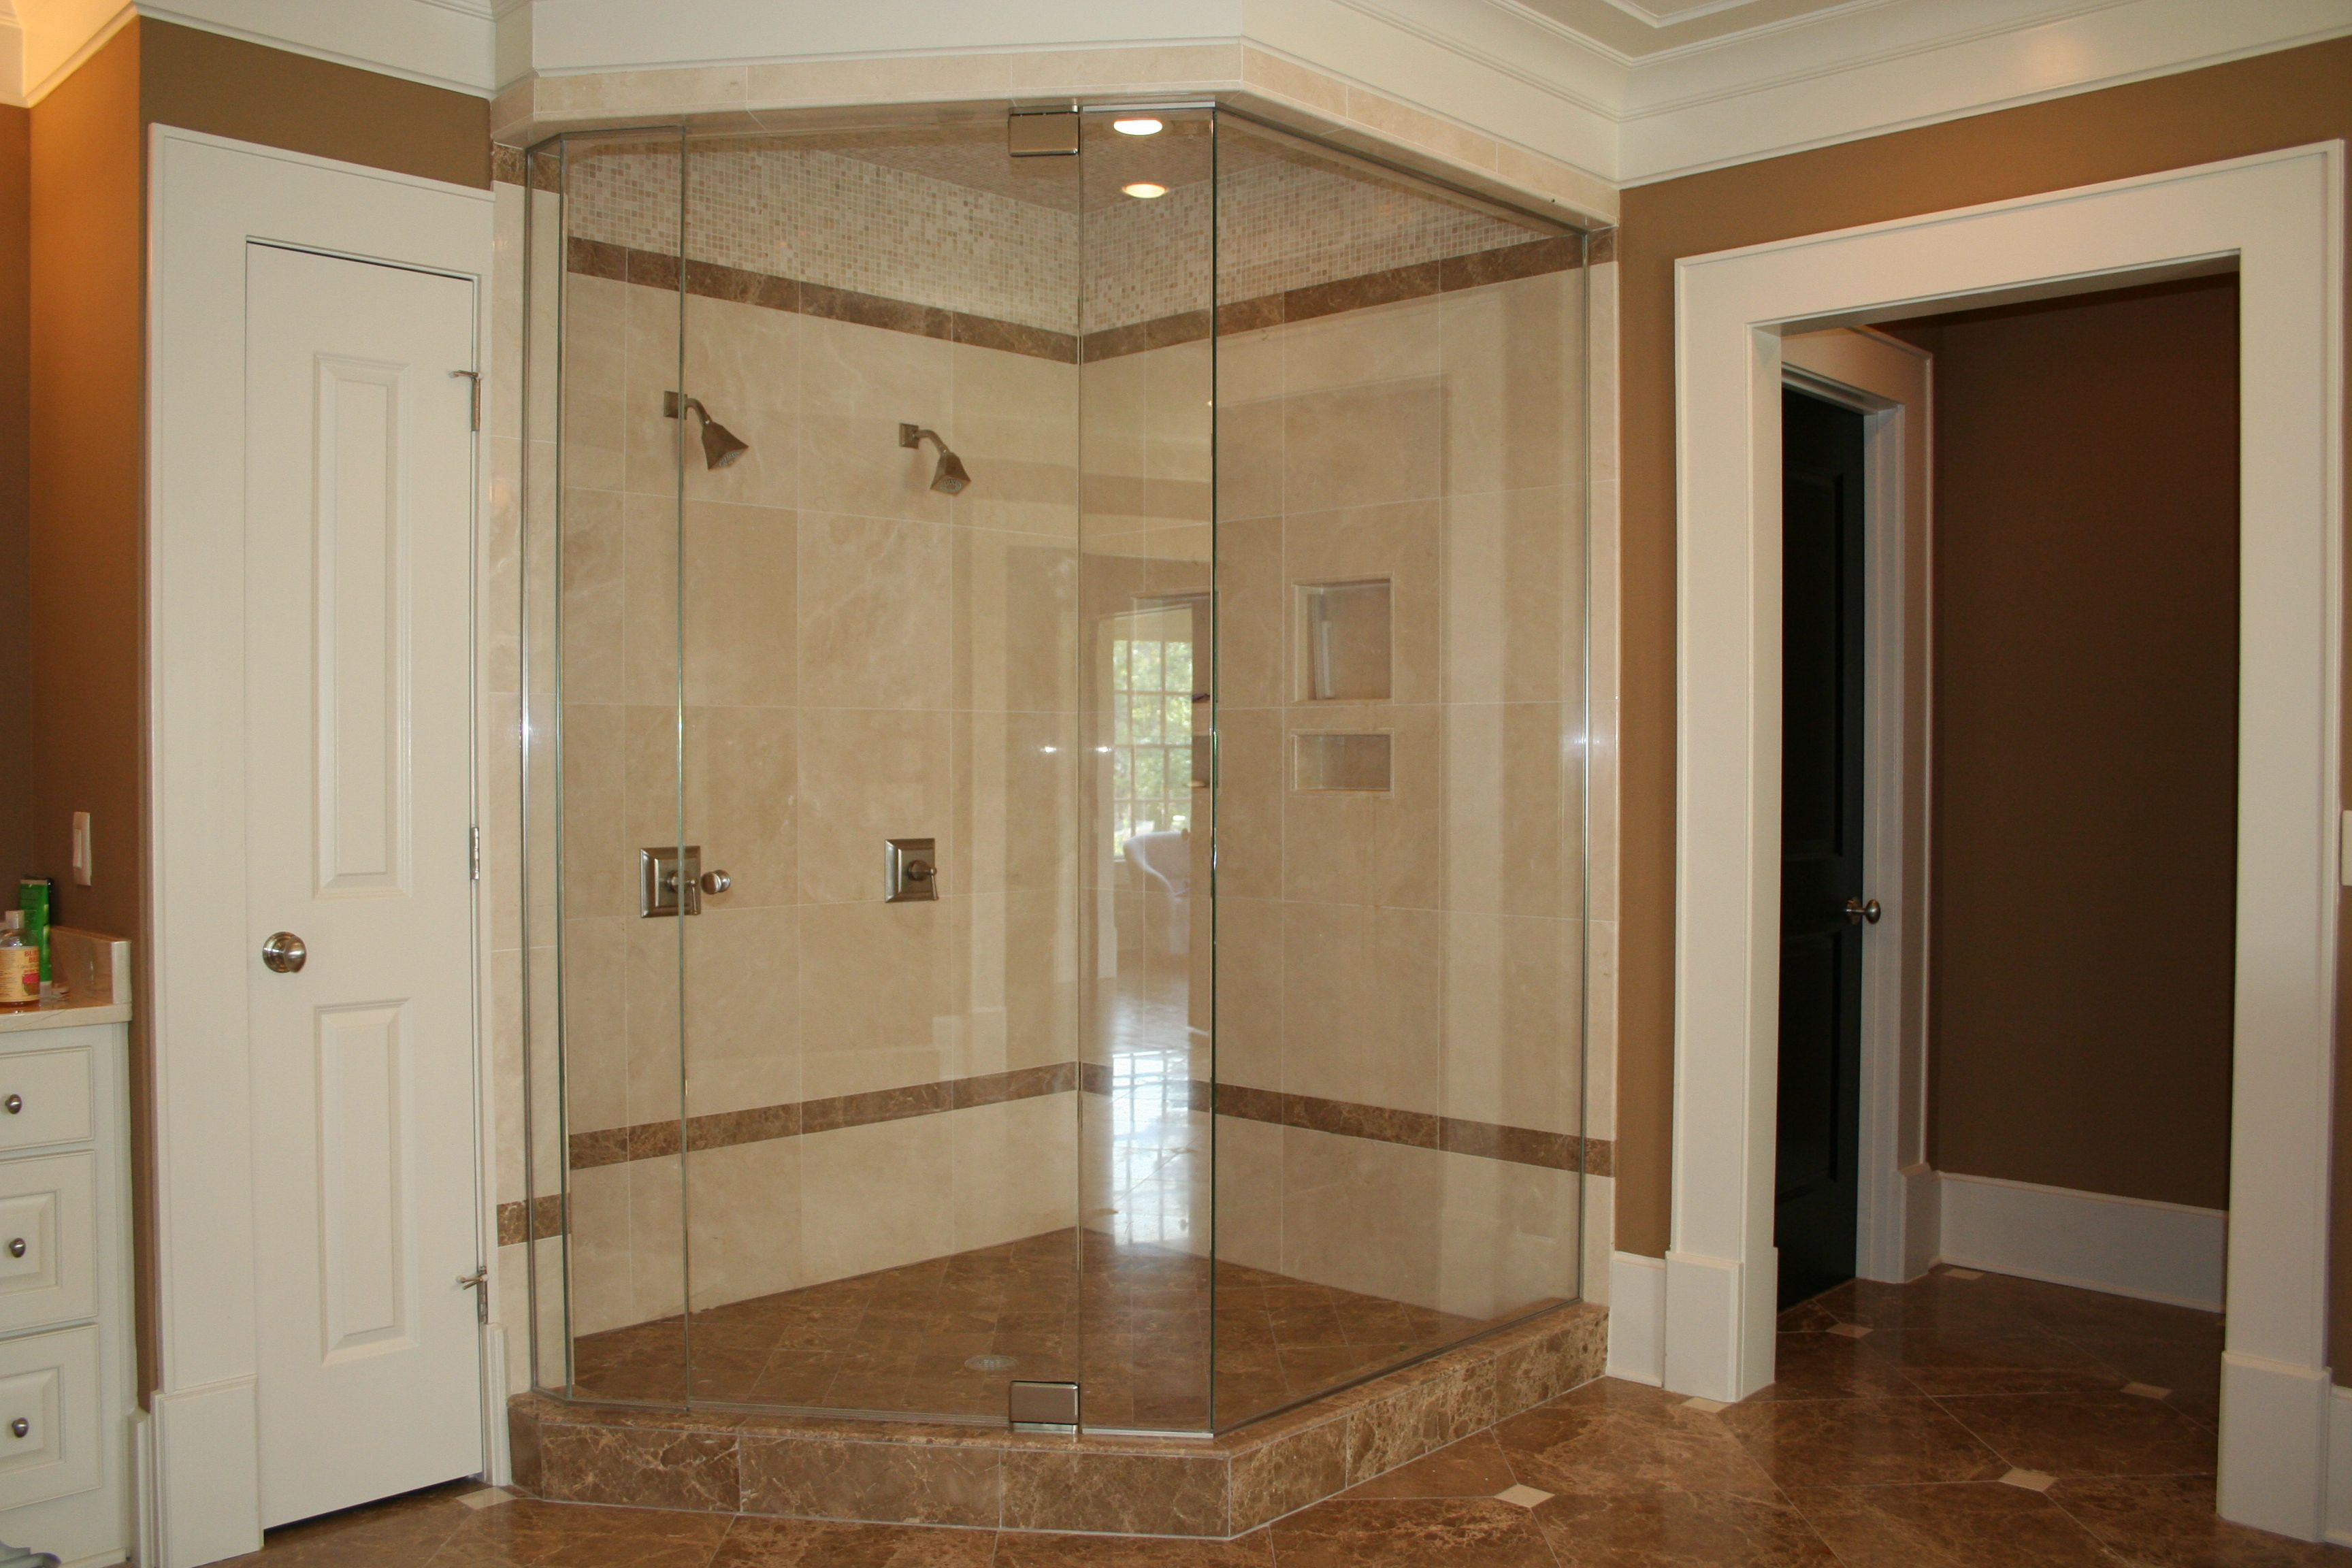 Cozy Bathroom With Delightful Neo Angle Shower: Neo Angle Shower ...